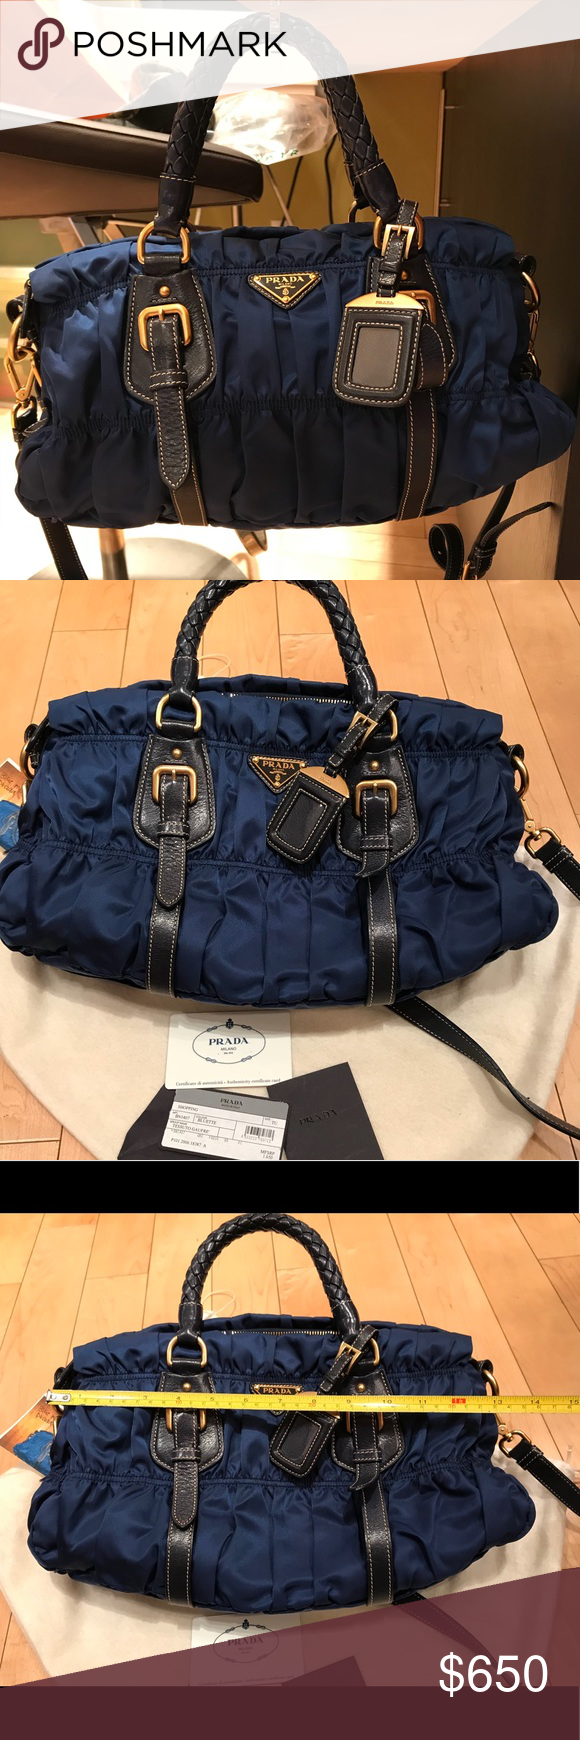 515d719fcfe2 Prada sapphire blue nylon bag Prada sapphire blue nylon bag crossbody with  woven weave handles. In excellent condition. No box avail but dust bag  included